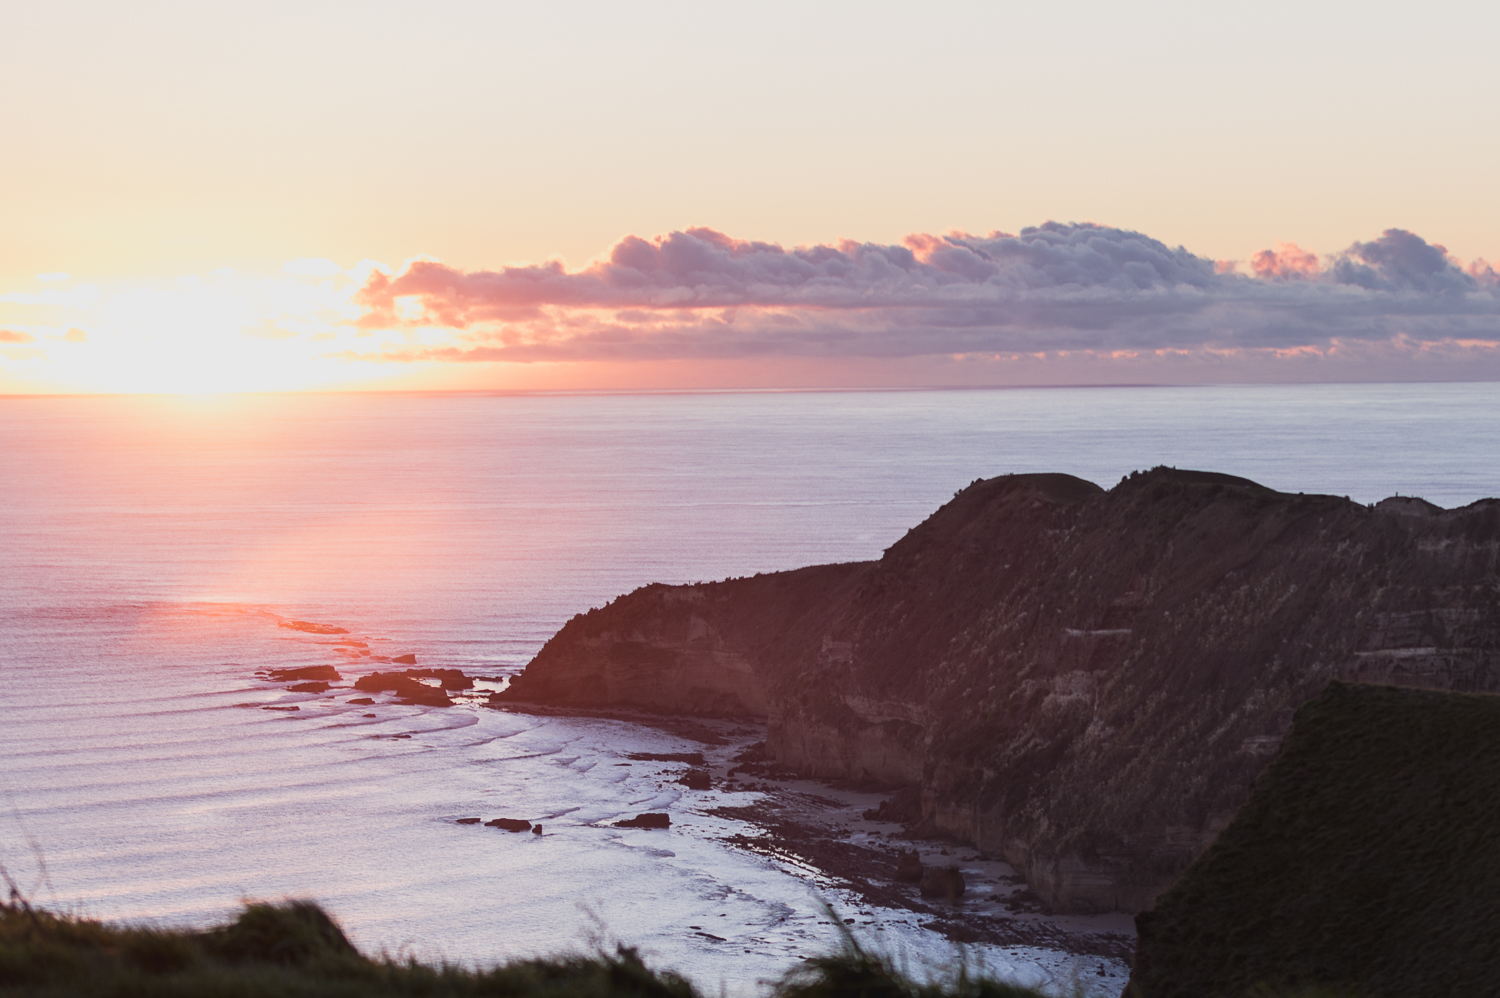 cape-kidnappers-golf-course-at-sunrise-hawkes-bay-pink-sky.jpg